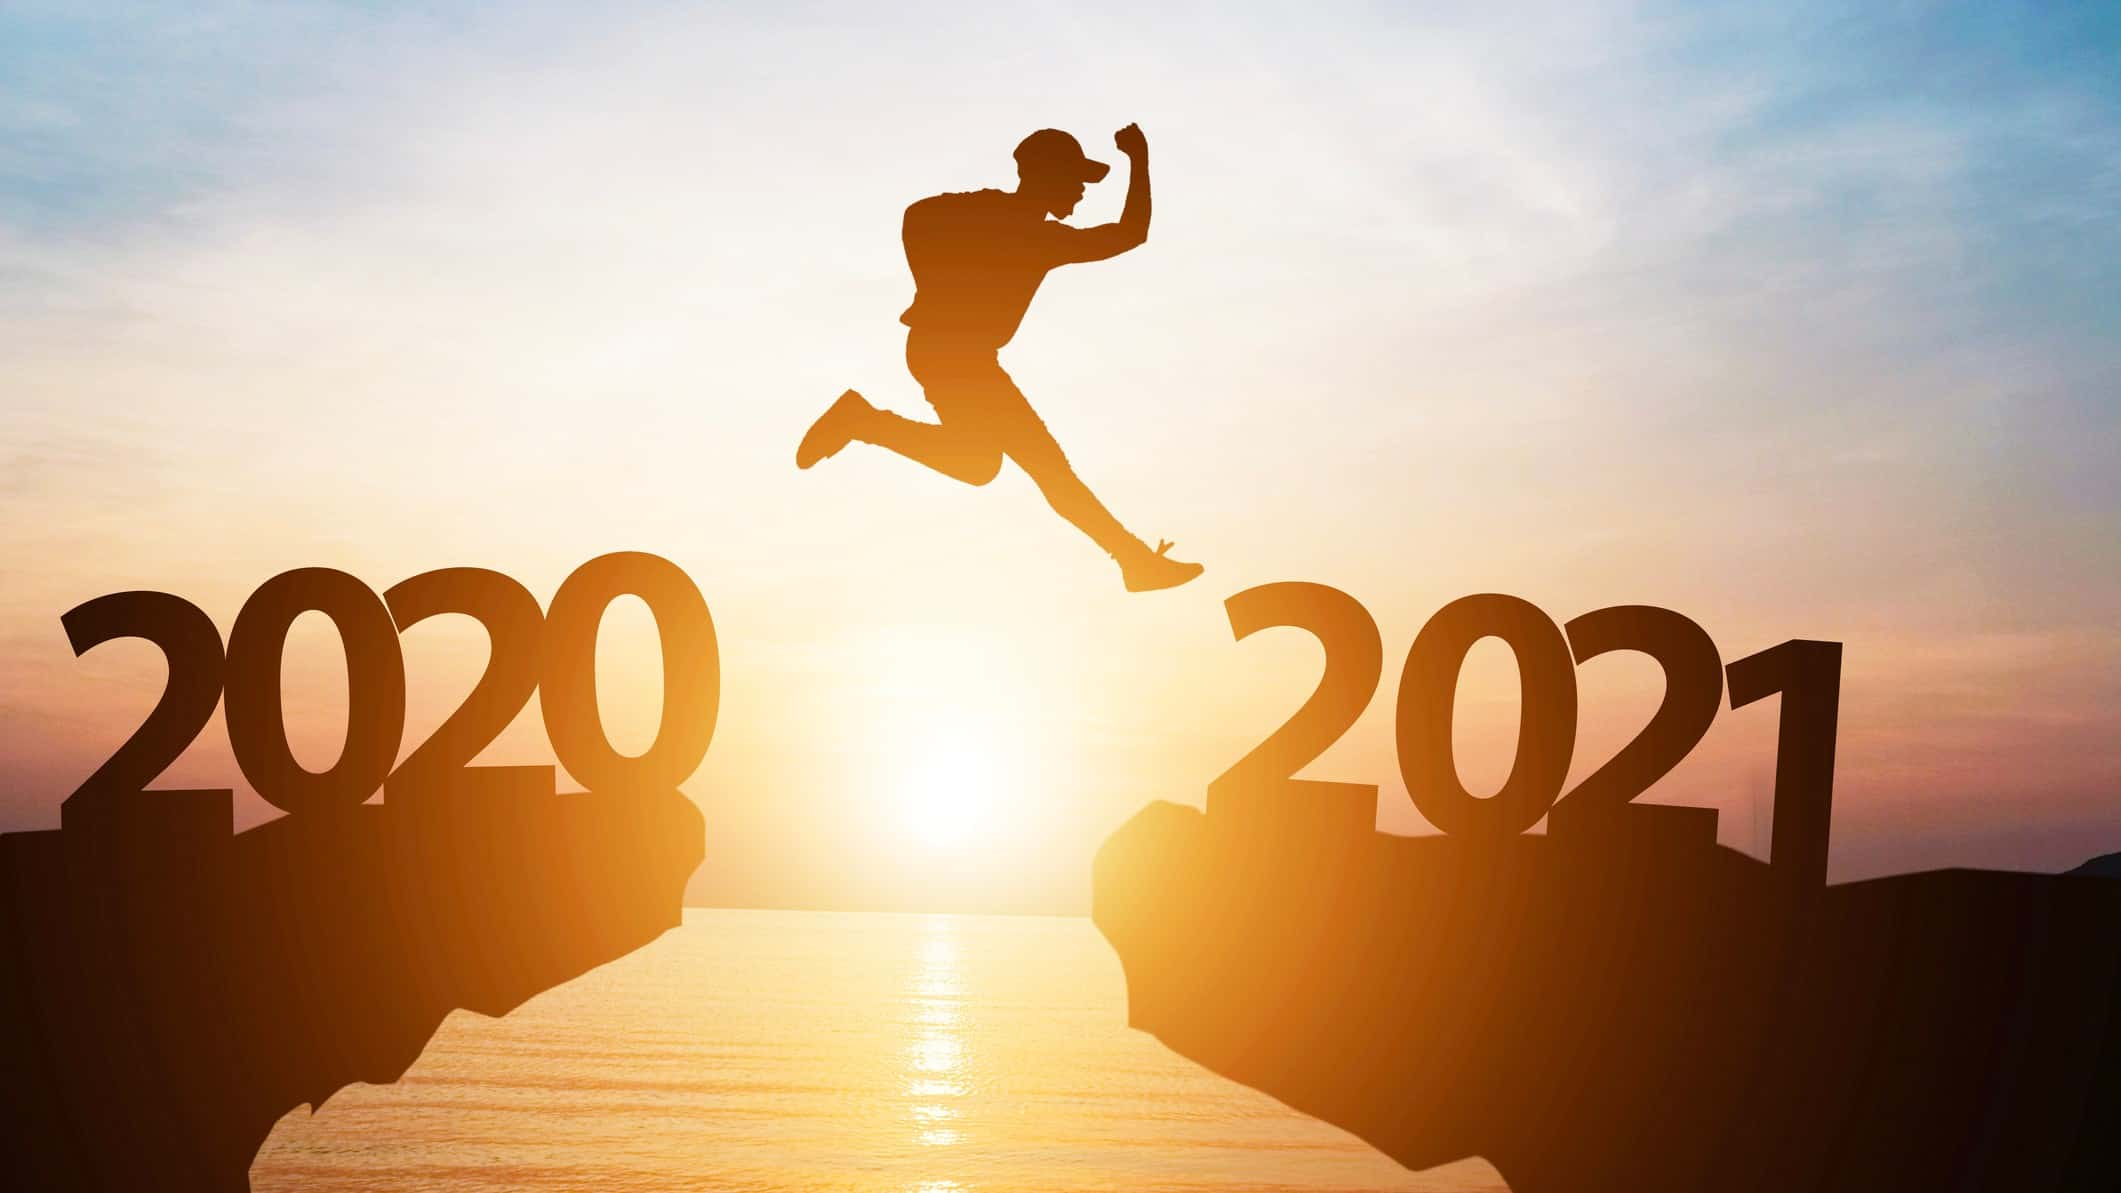 man jumping from 2020 cliff to 2021 cliff representing asx outlook 2021